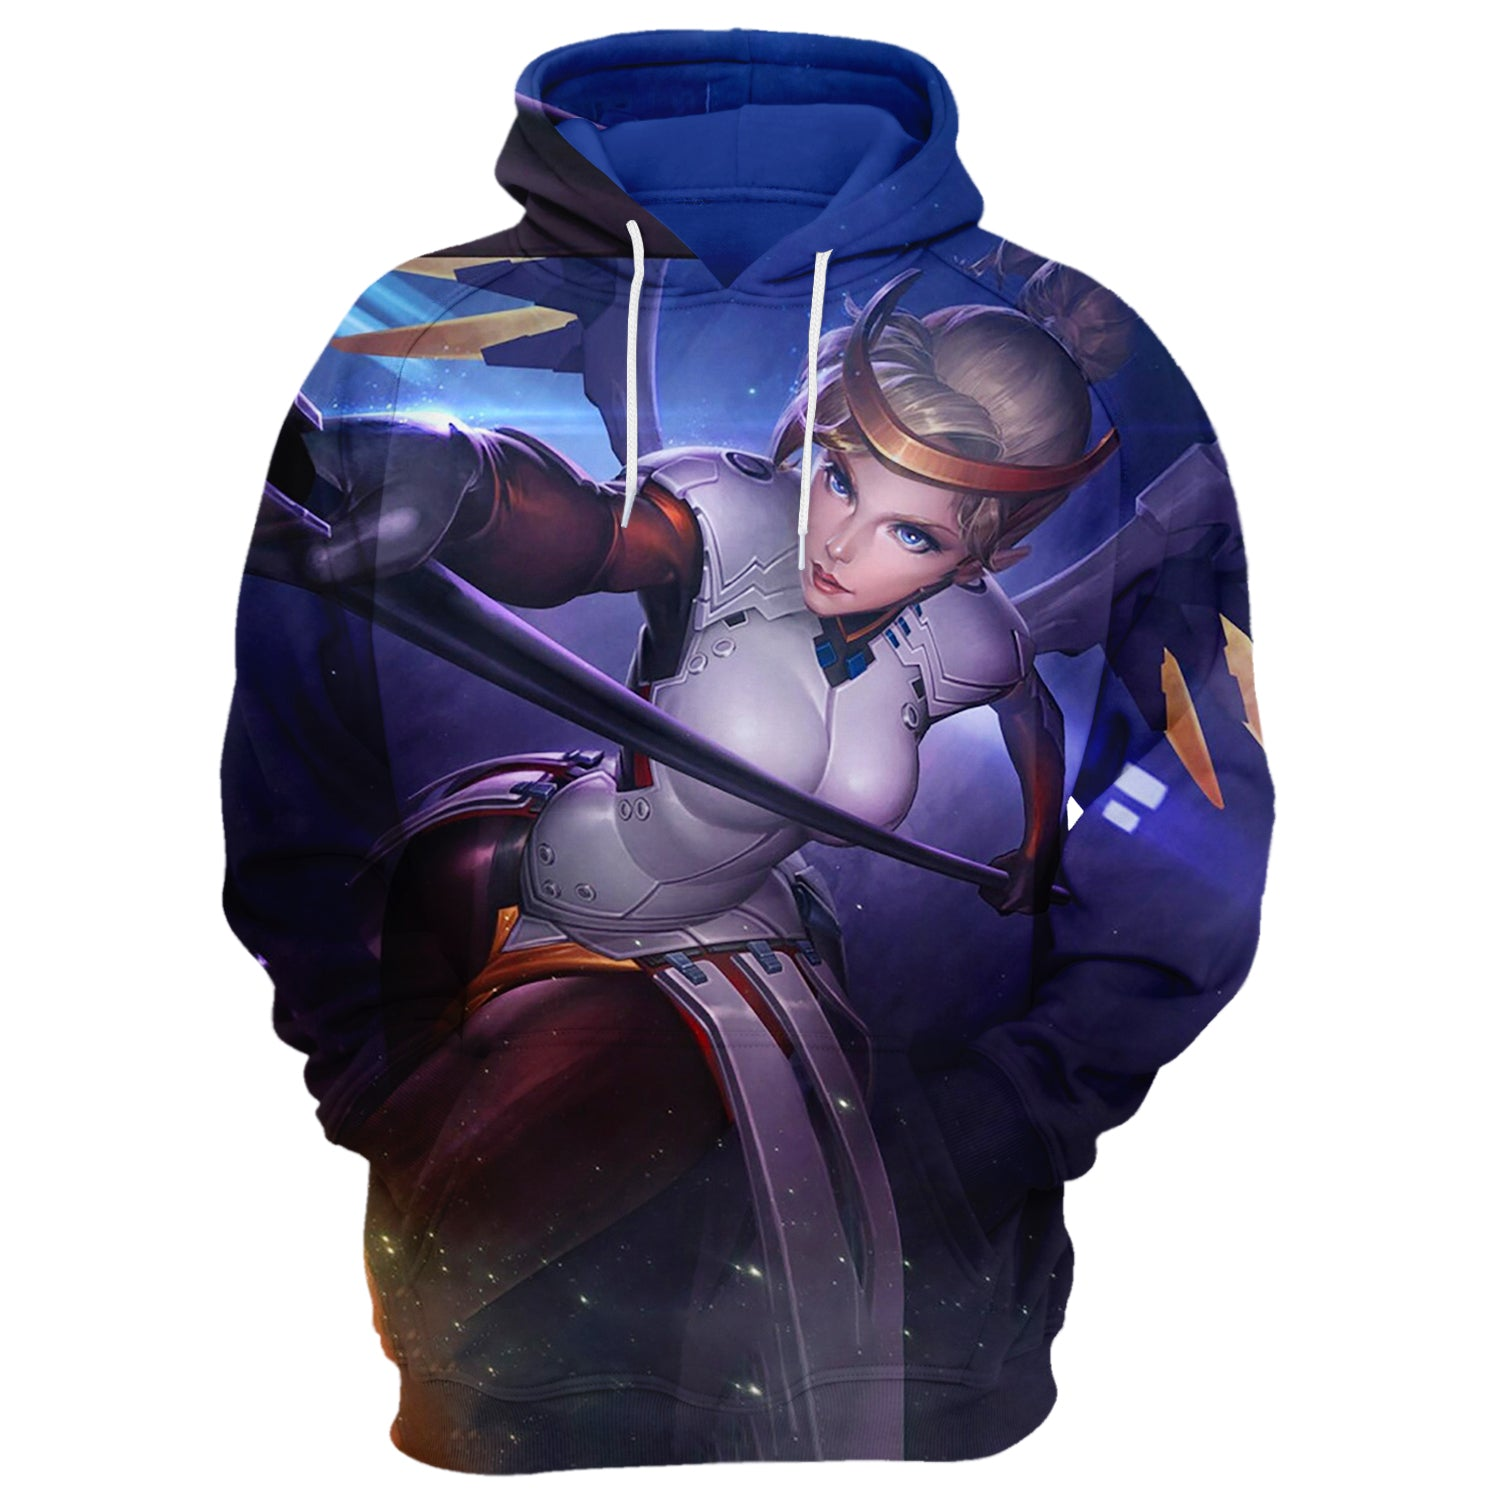 Overwatch Limited Edition Hoodies & Tees